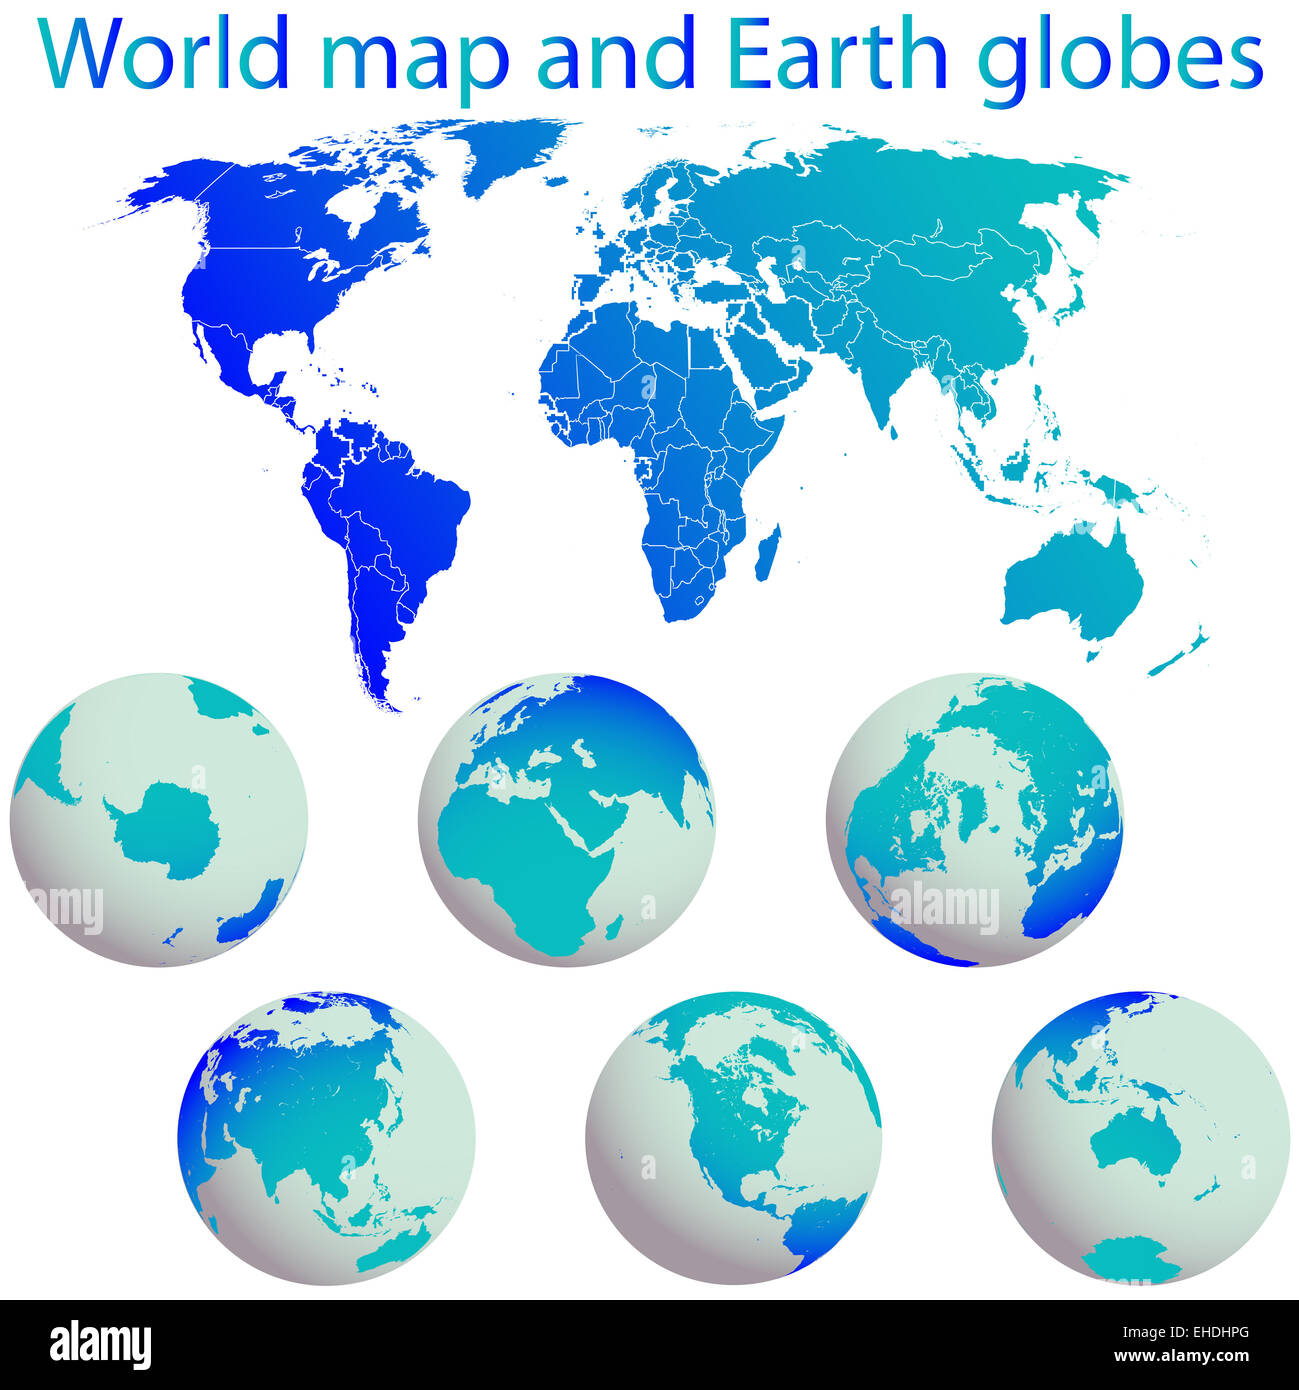 world map and earth globes - Stock Image